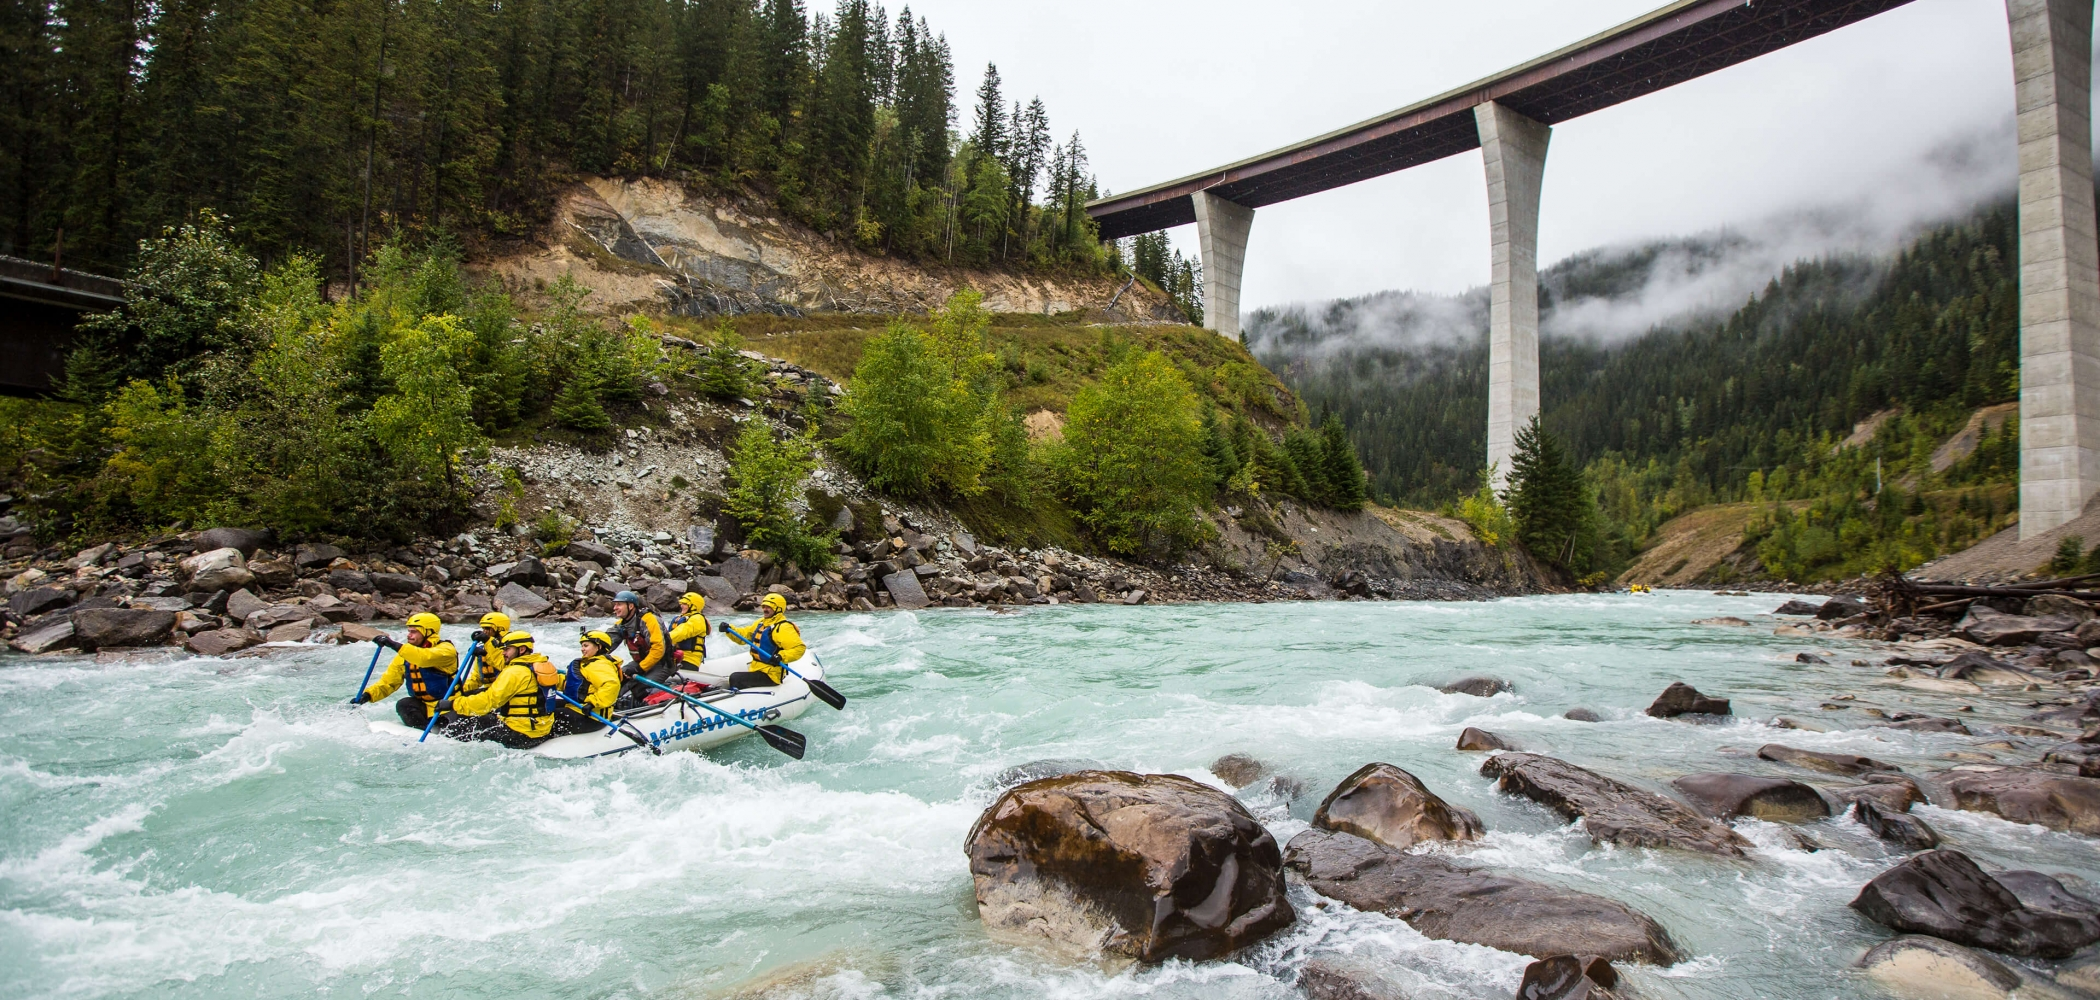 River Rafting in BC Canada